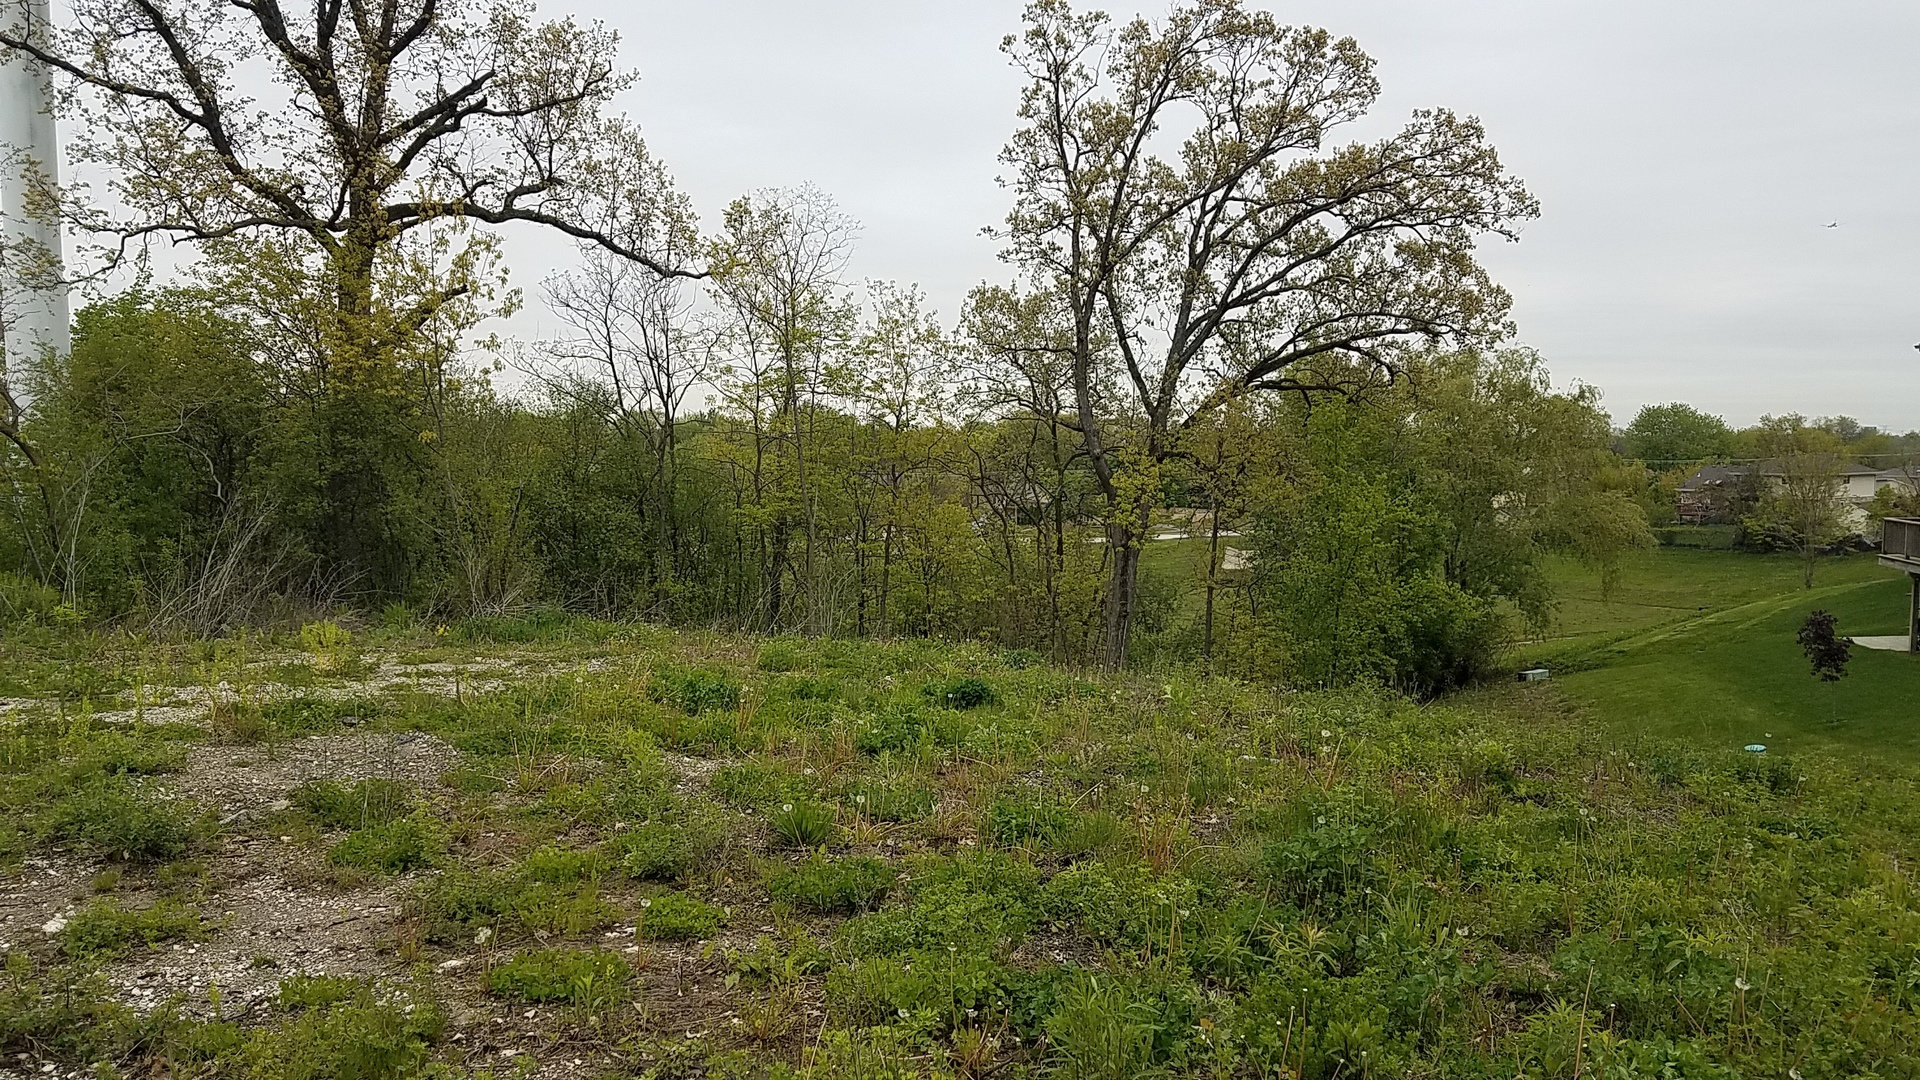 PRICE REDUCTION - Seller motivated for quick sale - bring all offers!!! Great opportunity to own this large 68X100 home site in beautiful Hickory Hills. Build your custom dream home in the exclusive Park Hill Estates. Close to schools, parks, and shopping. Easy access to I-294 expressway and I-55, only 20 miles from Chicago. All utilities are available to site on this walk-out basement home site.